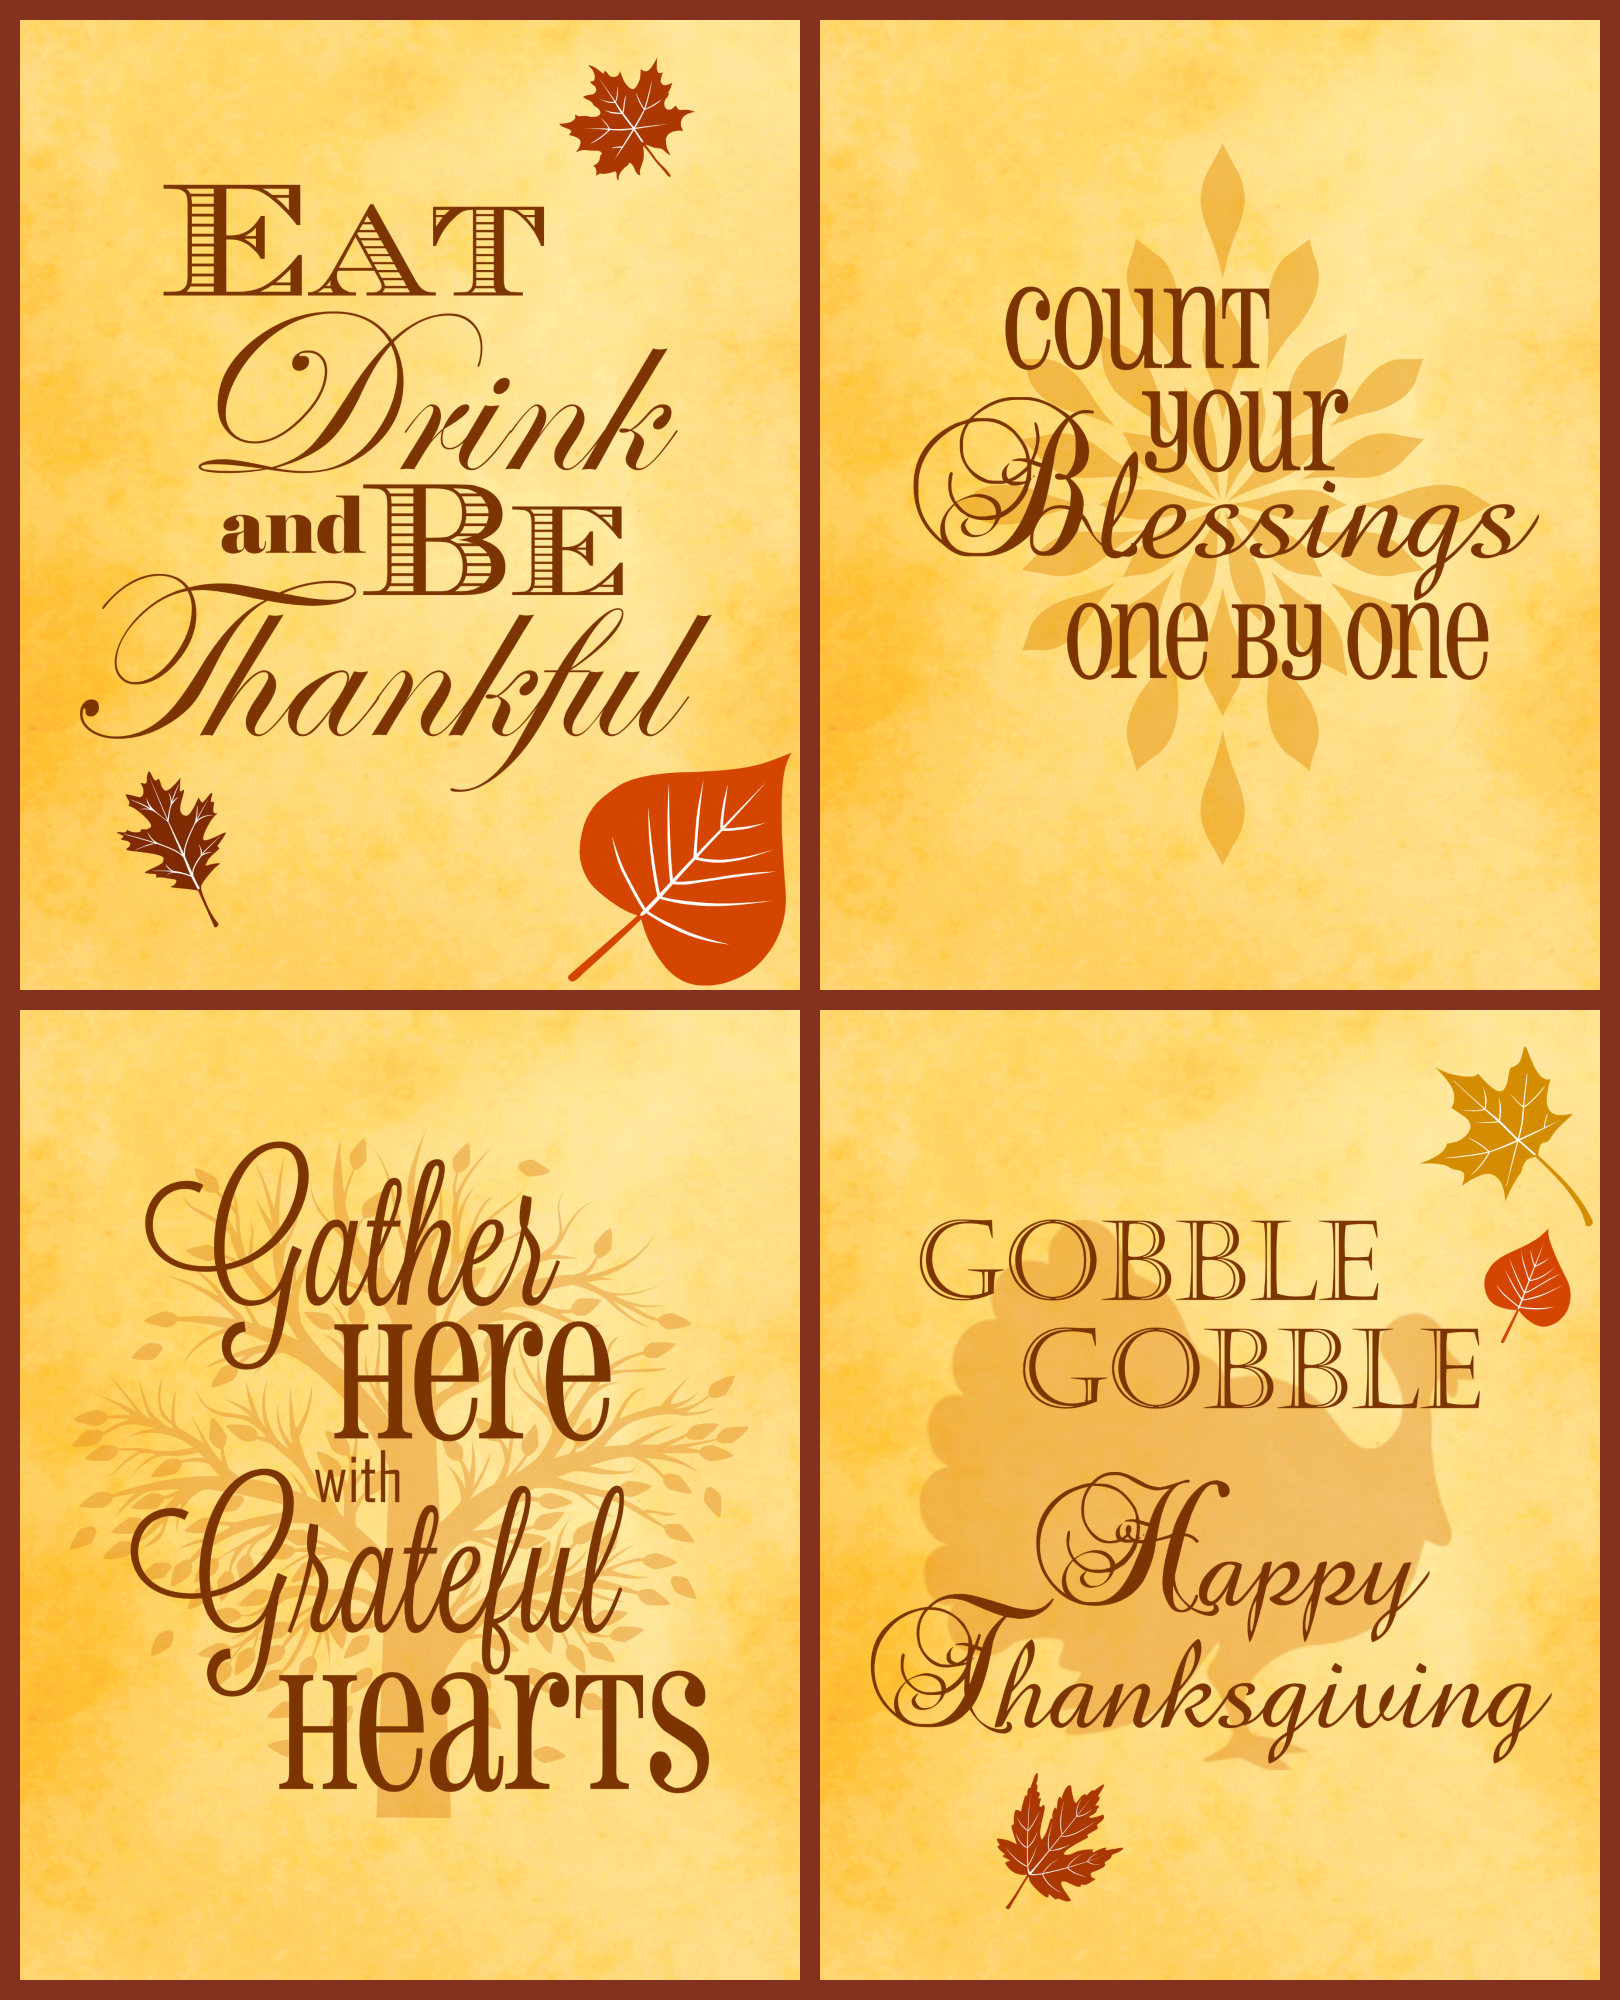 Free Thanksgiving Printables 4 Pack | Serendipity And Spice - Free Printable Thanksgiving Images